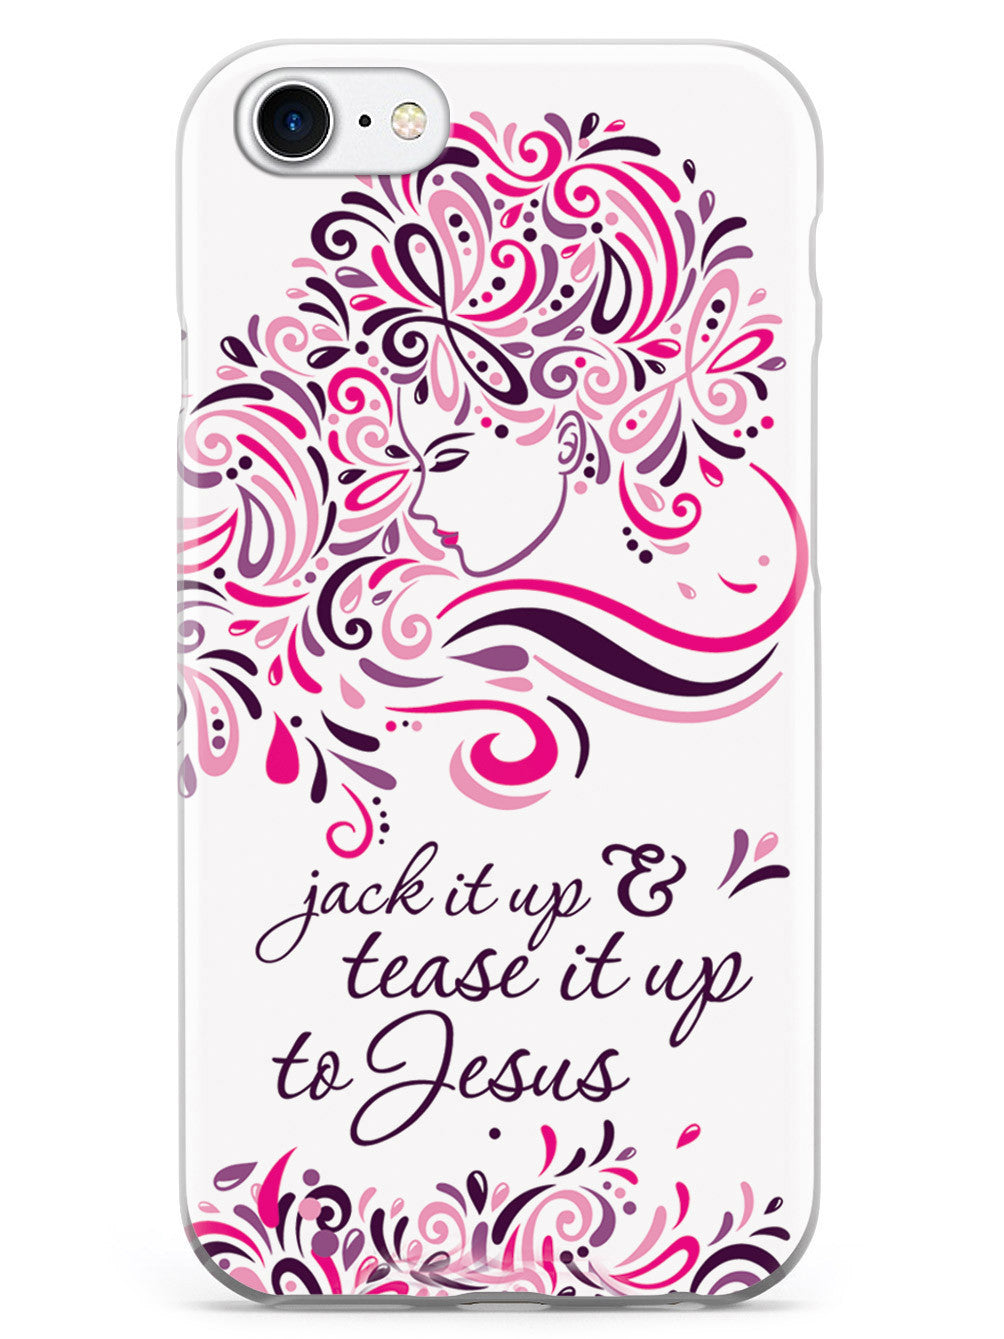 Jack it up & Tease it up to Jesus Case